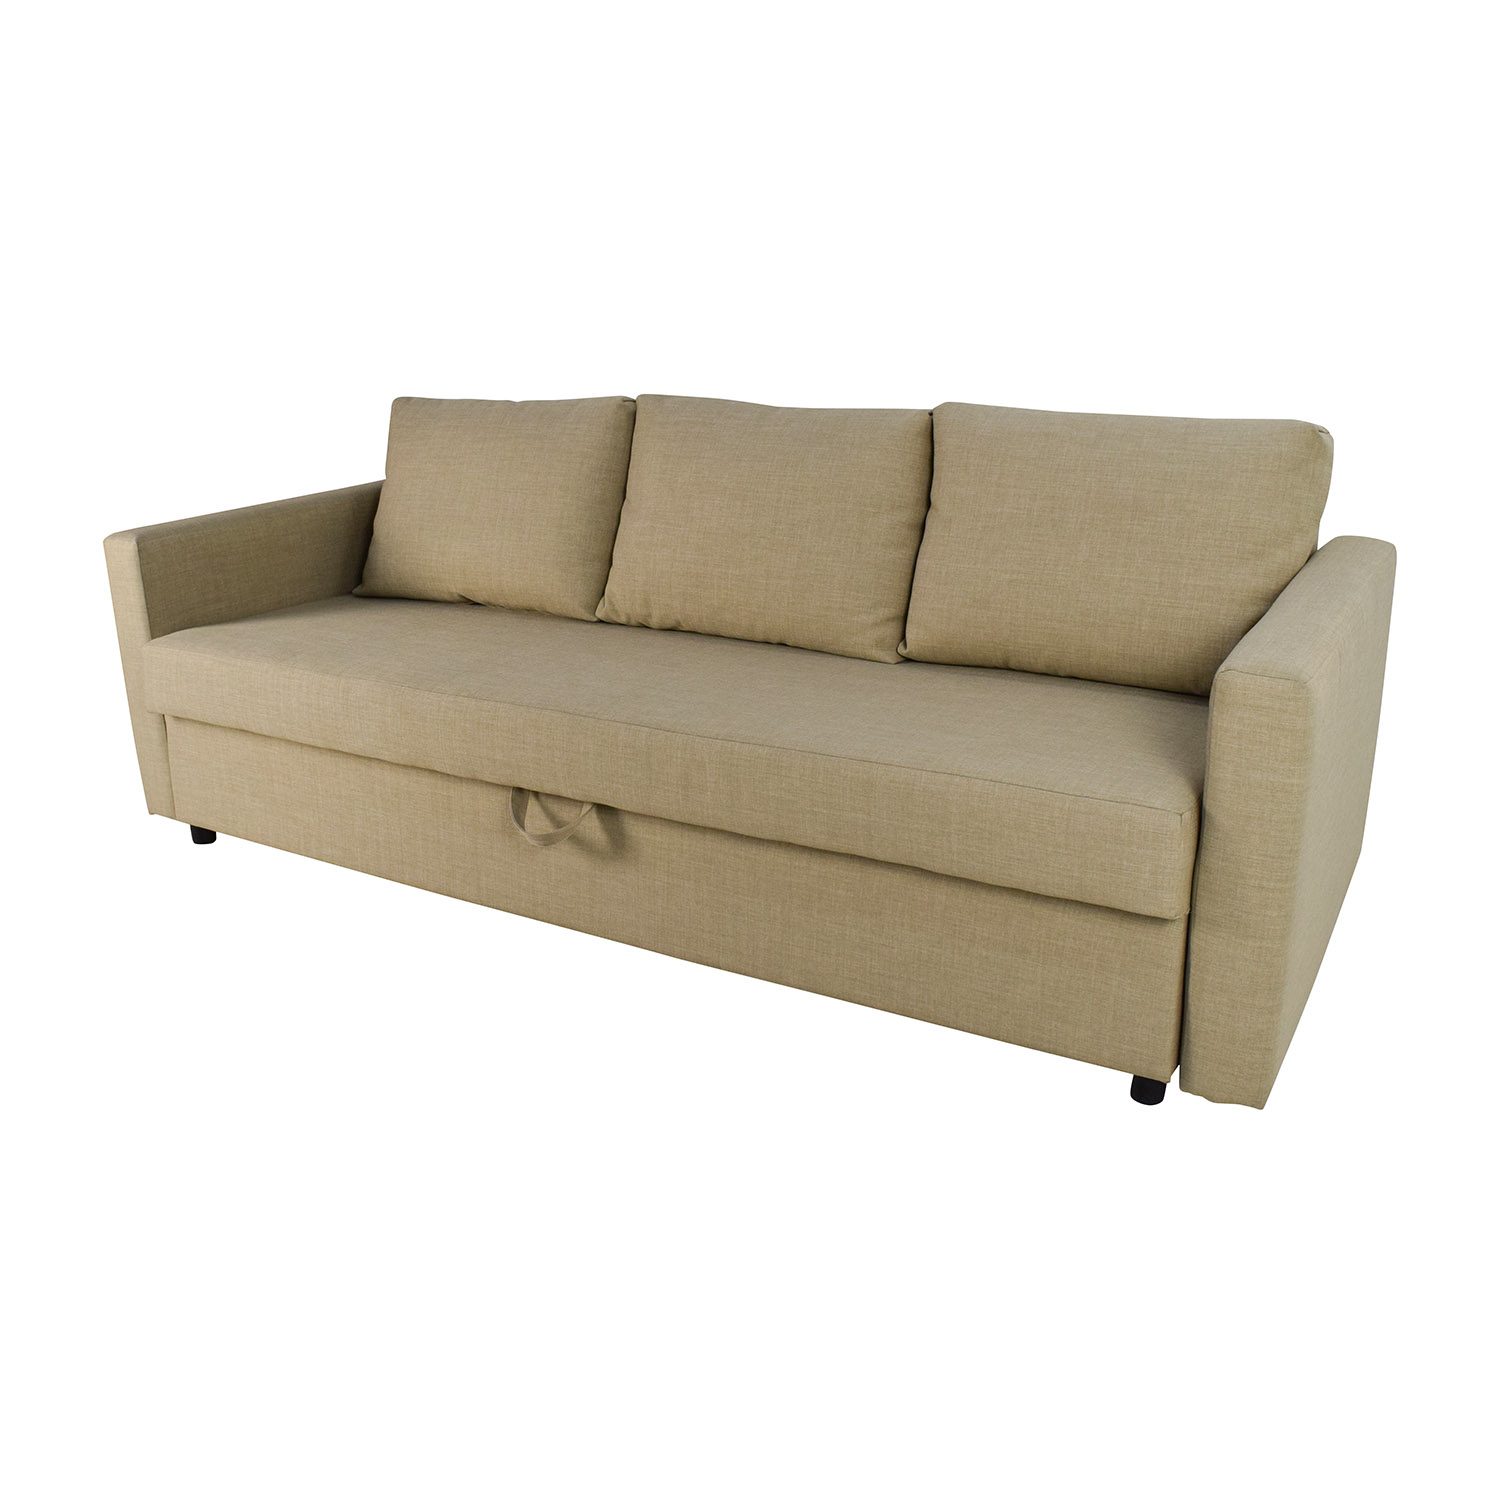 buy sleeper sofa rooms to go outlet 62 off ikea friheten with storage sofas